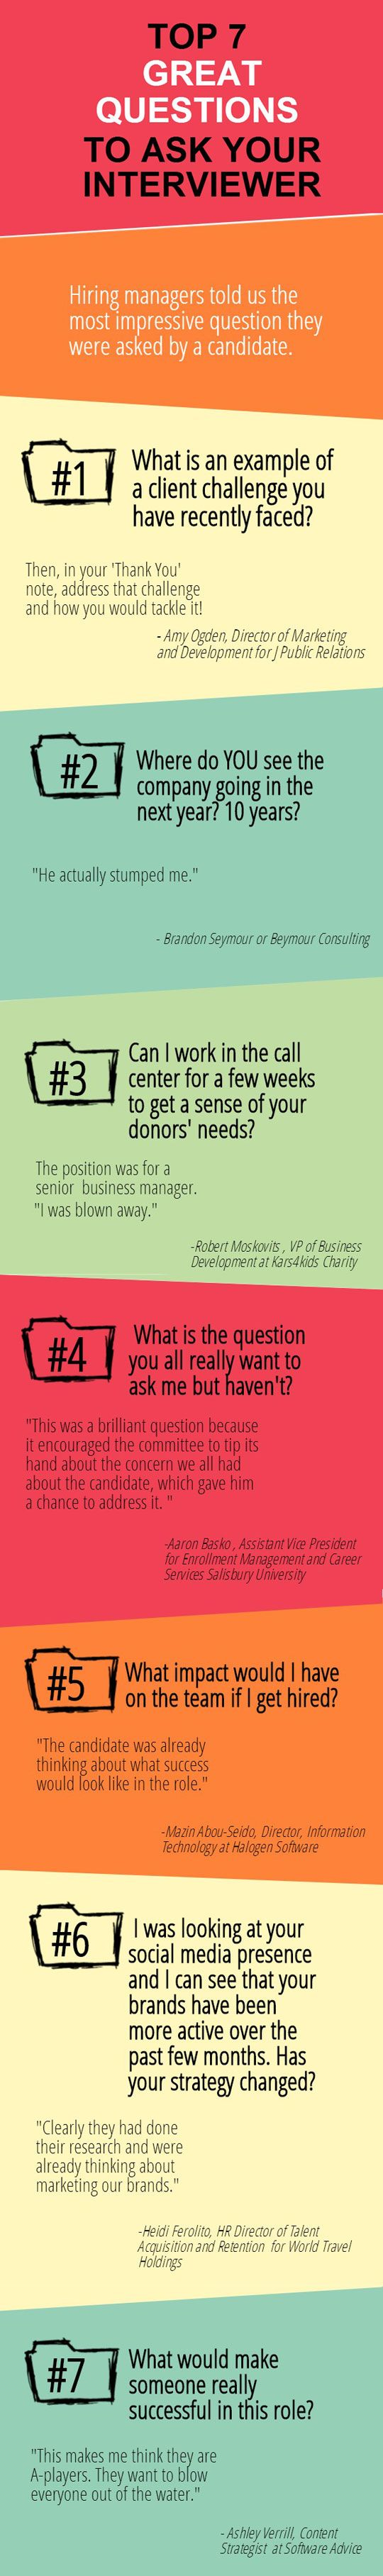 Top 7 questions you ask your interviewer.